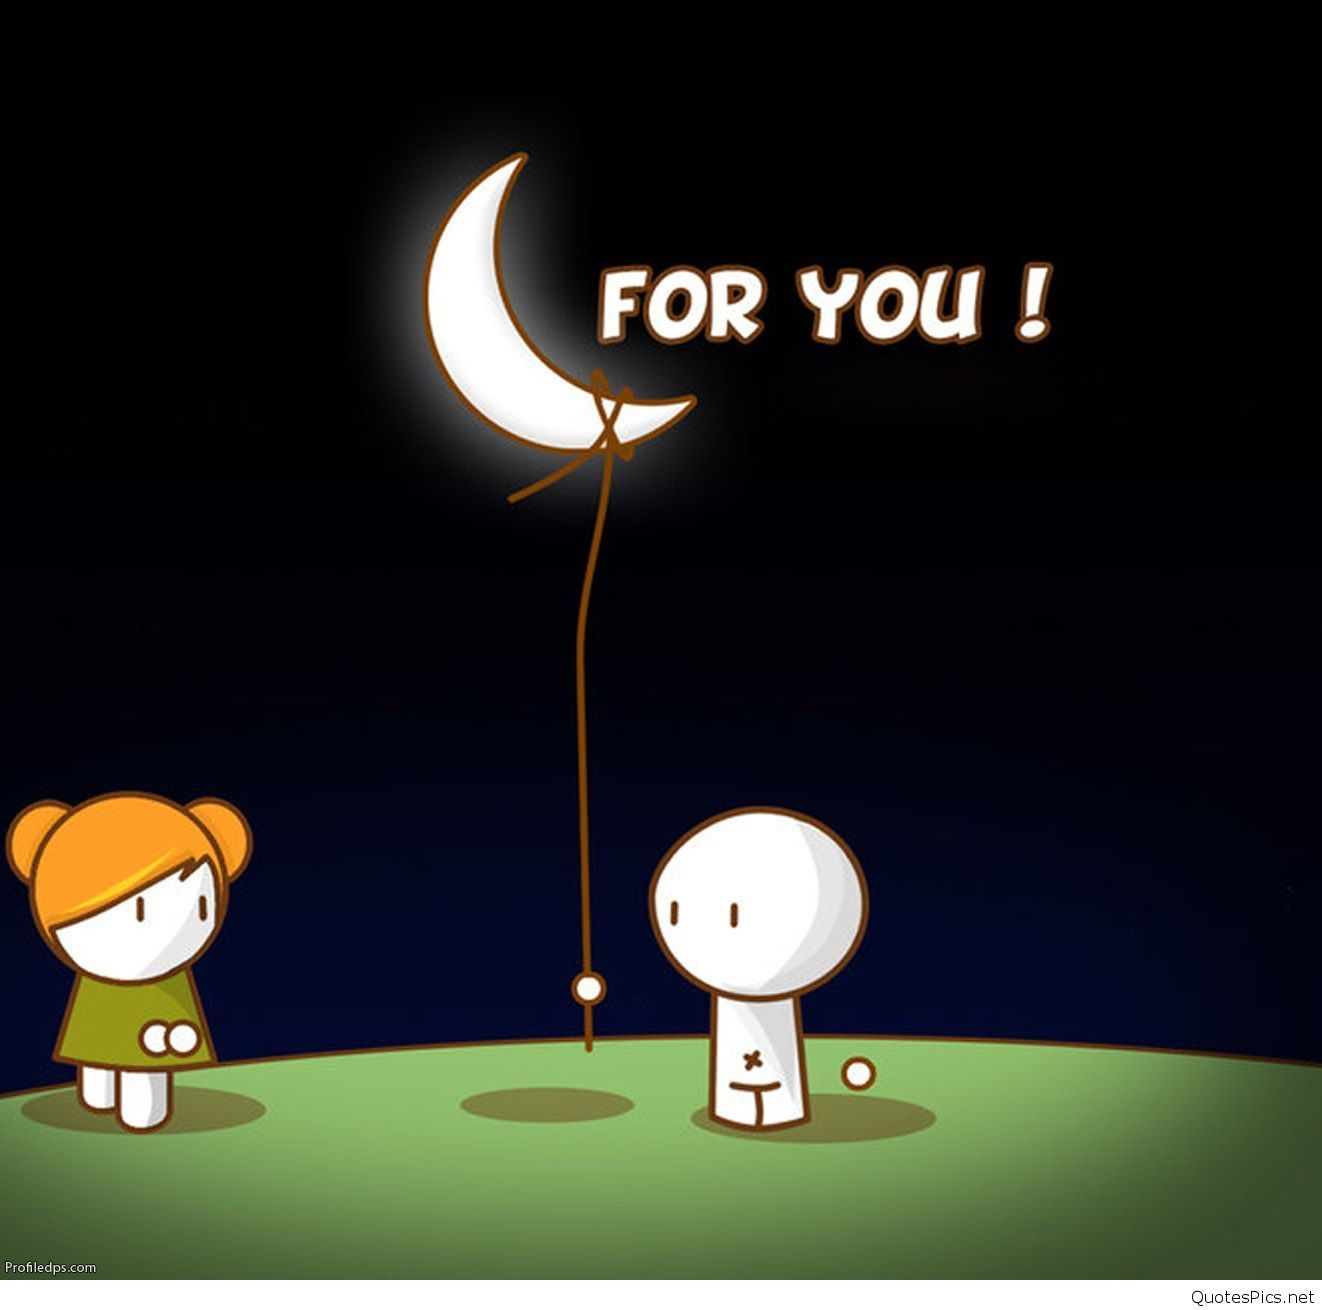 Wallpaper For Facebook Profile Picture Love Couple Images Lasso The Moon Love Moon